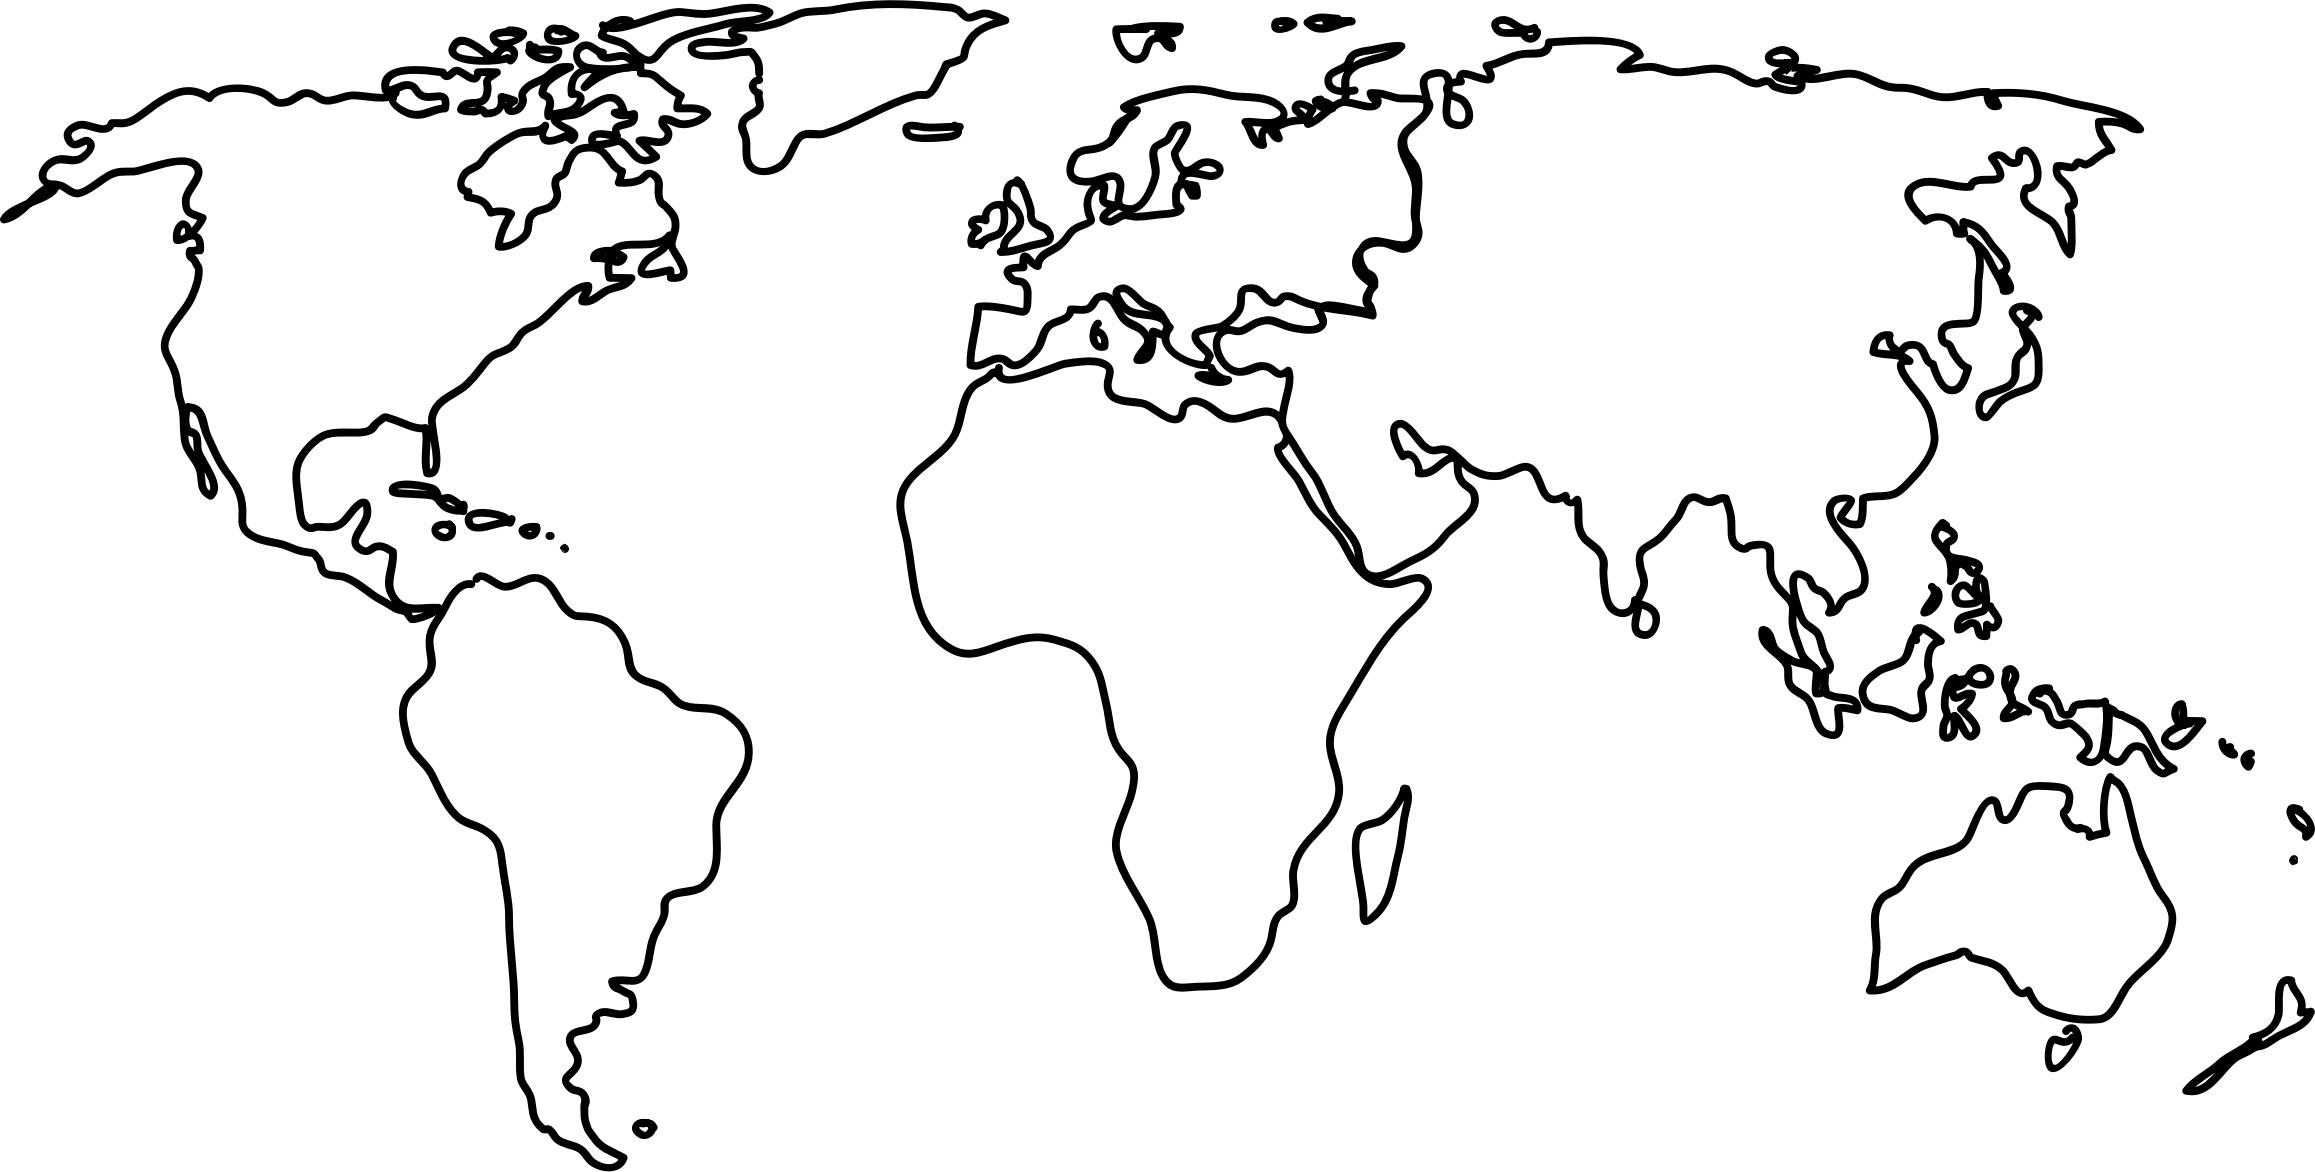 Black line drawing at getdrawings free for personal use black 2315x1172 map world black and white political world maps outline map at the gumiabroncs Gallery